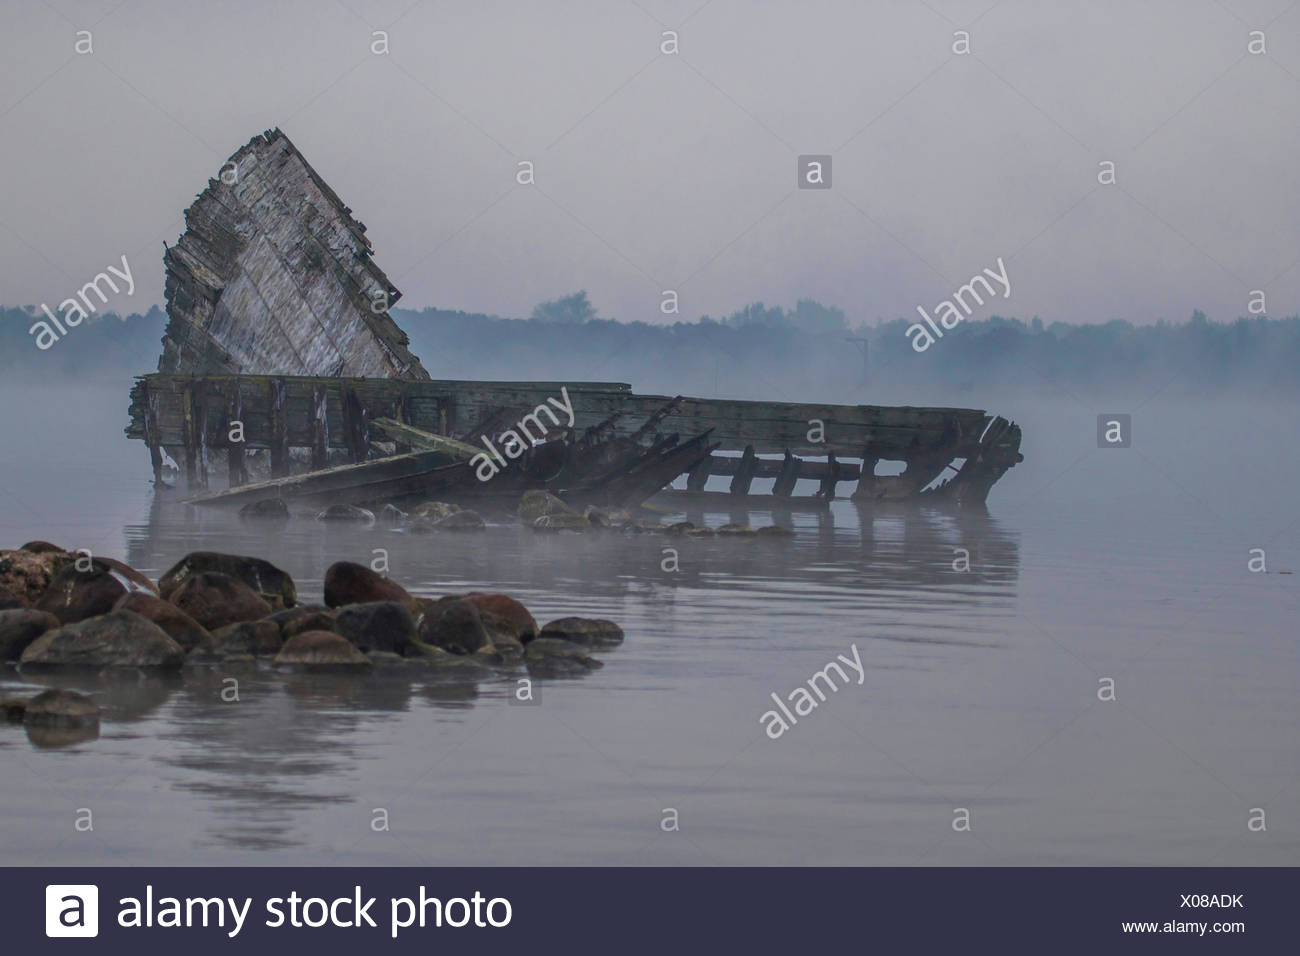 shipwreck in Breitling, Germany, Mecklenburg-Western Pomerania, Schnatermann, Rostock Stock Photo